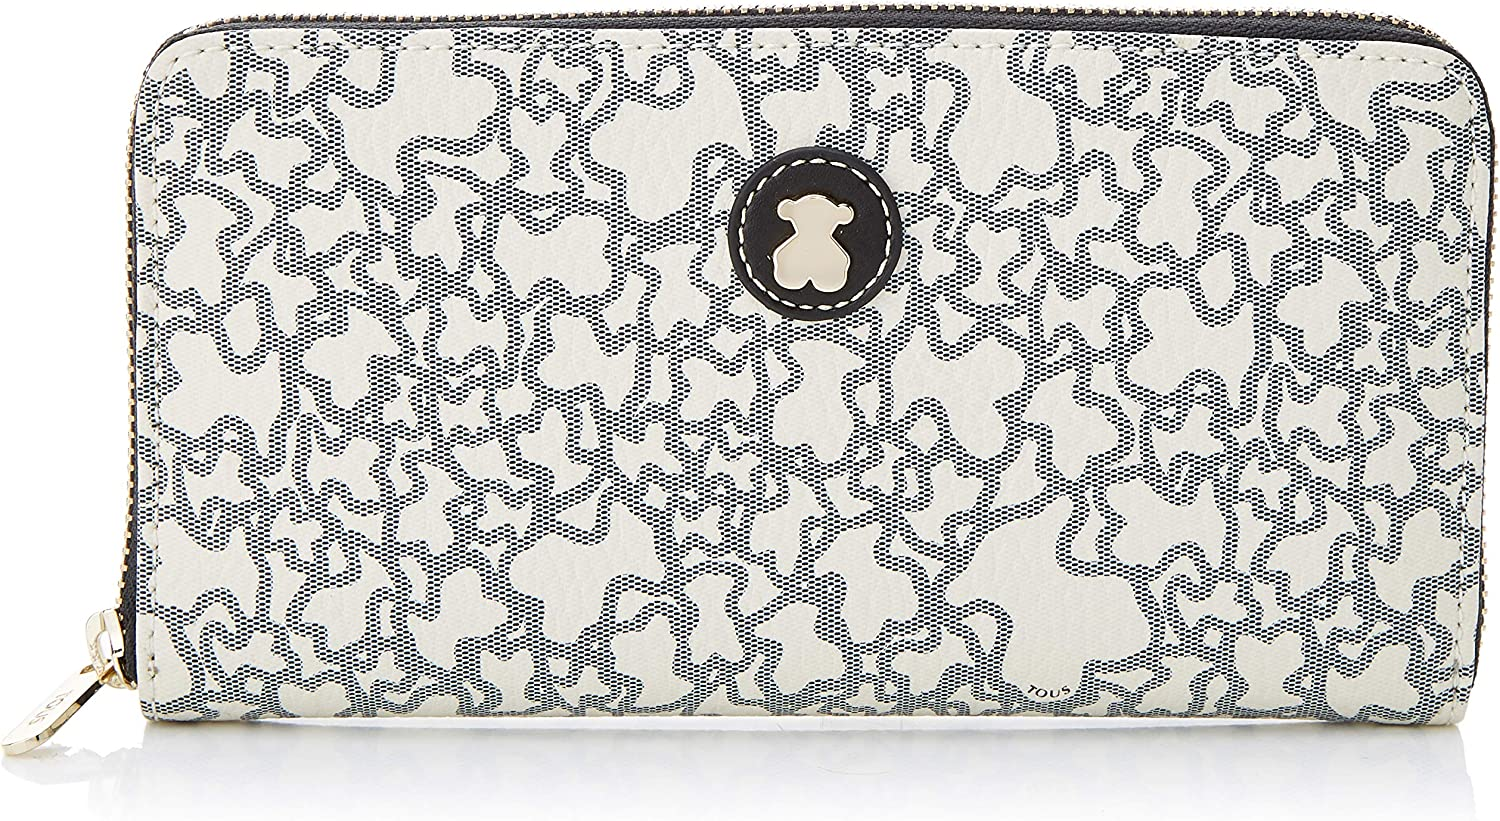 Tous Women's Billetera Mediana Kaos Mini Wallet